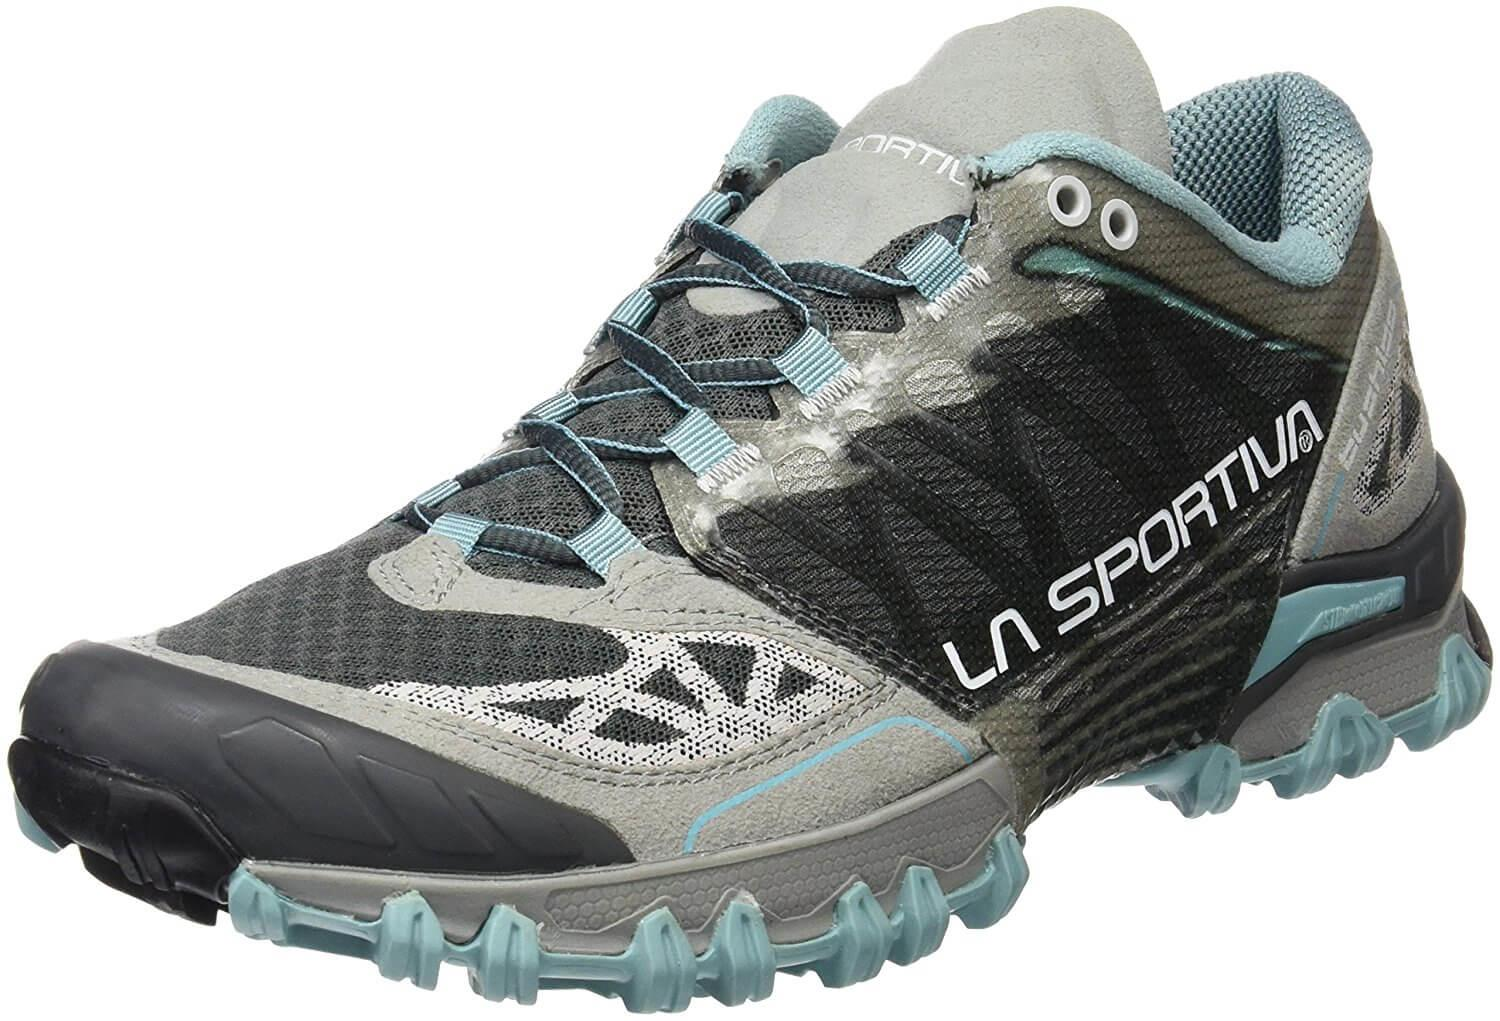 the La Sportiva Bushido is a dynamic stability trail shoe